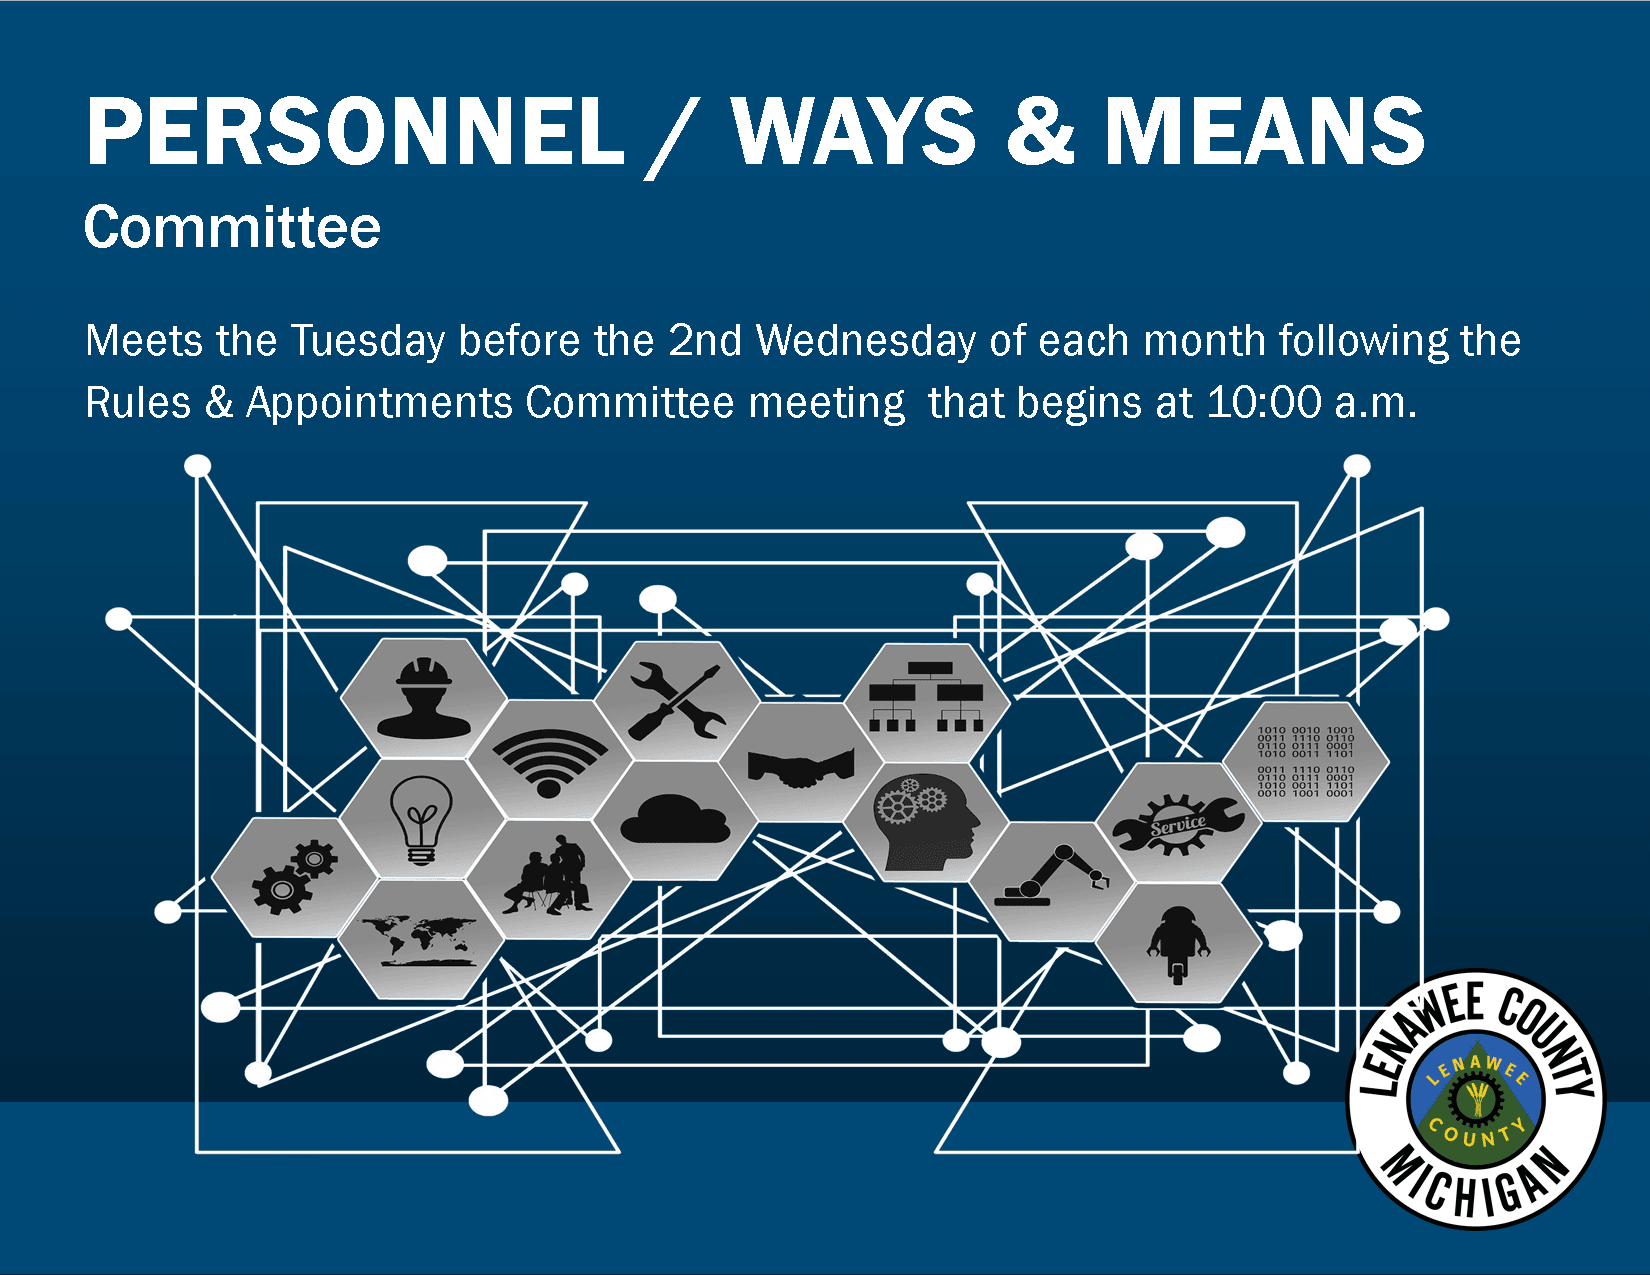 Personnel Wasy Means web of activities